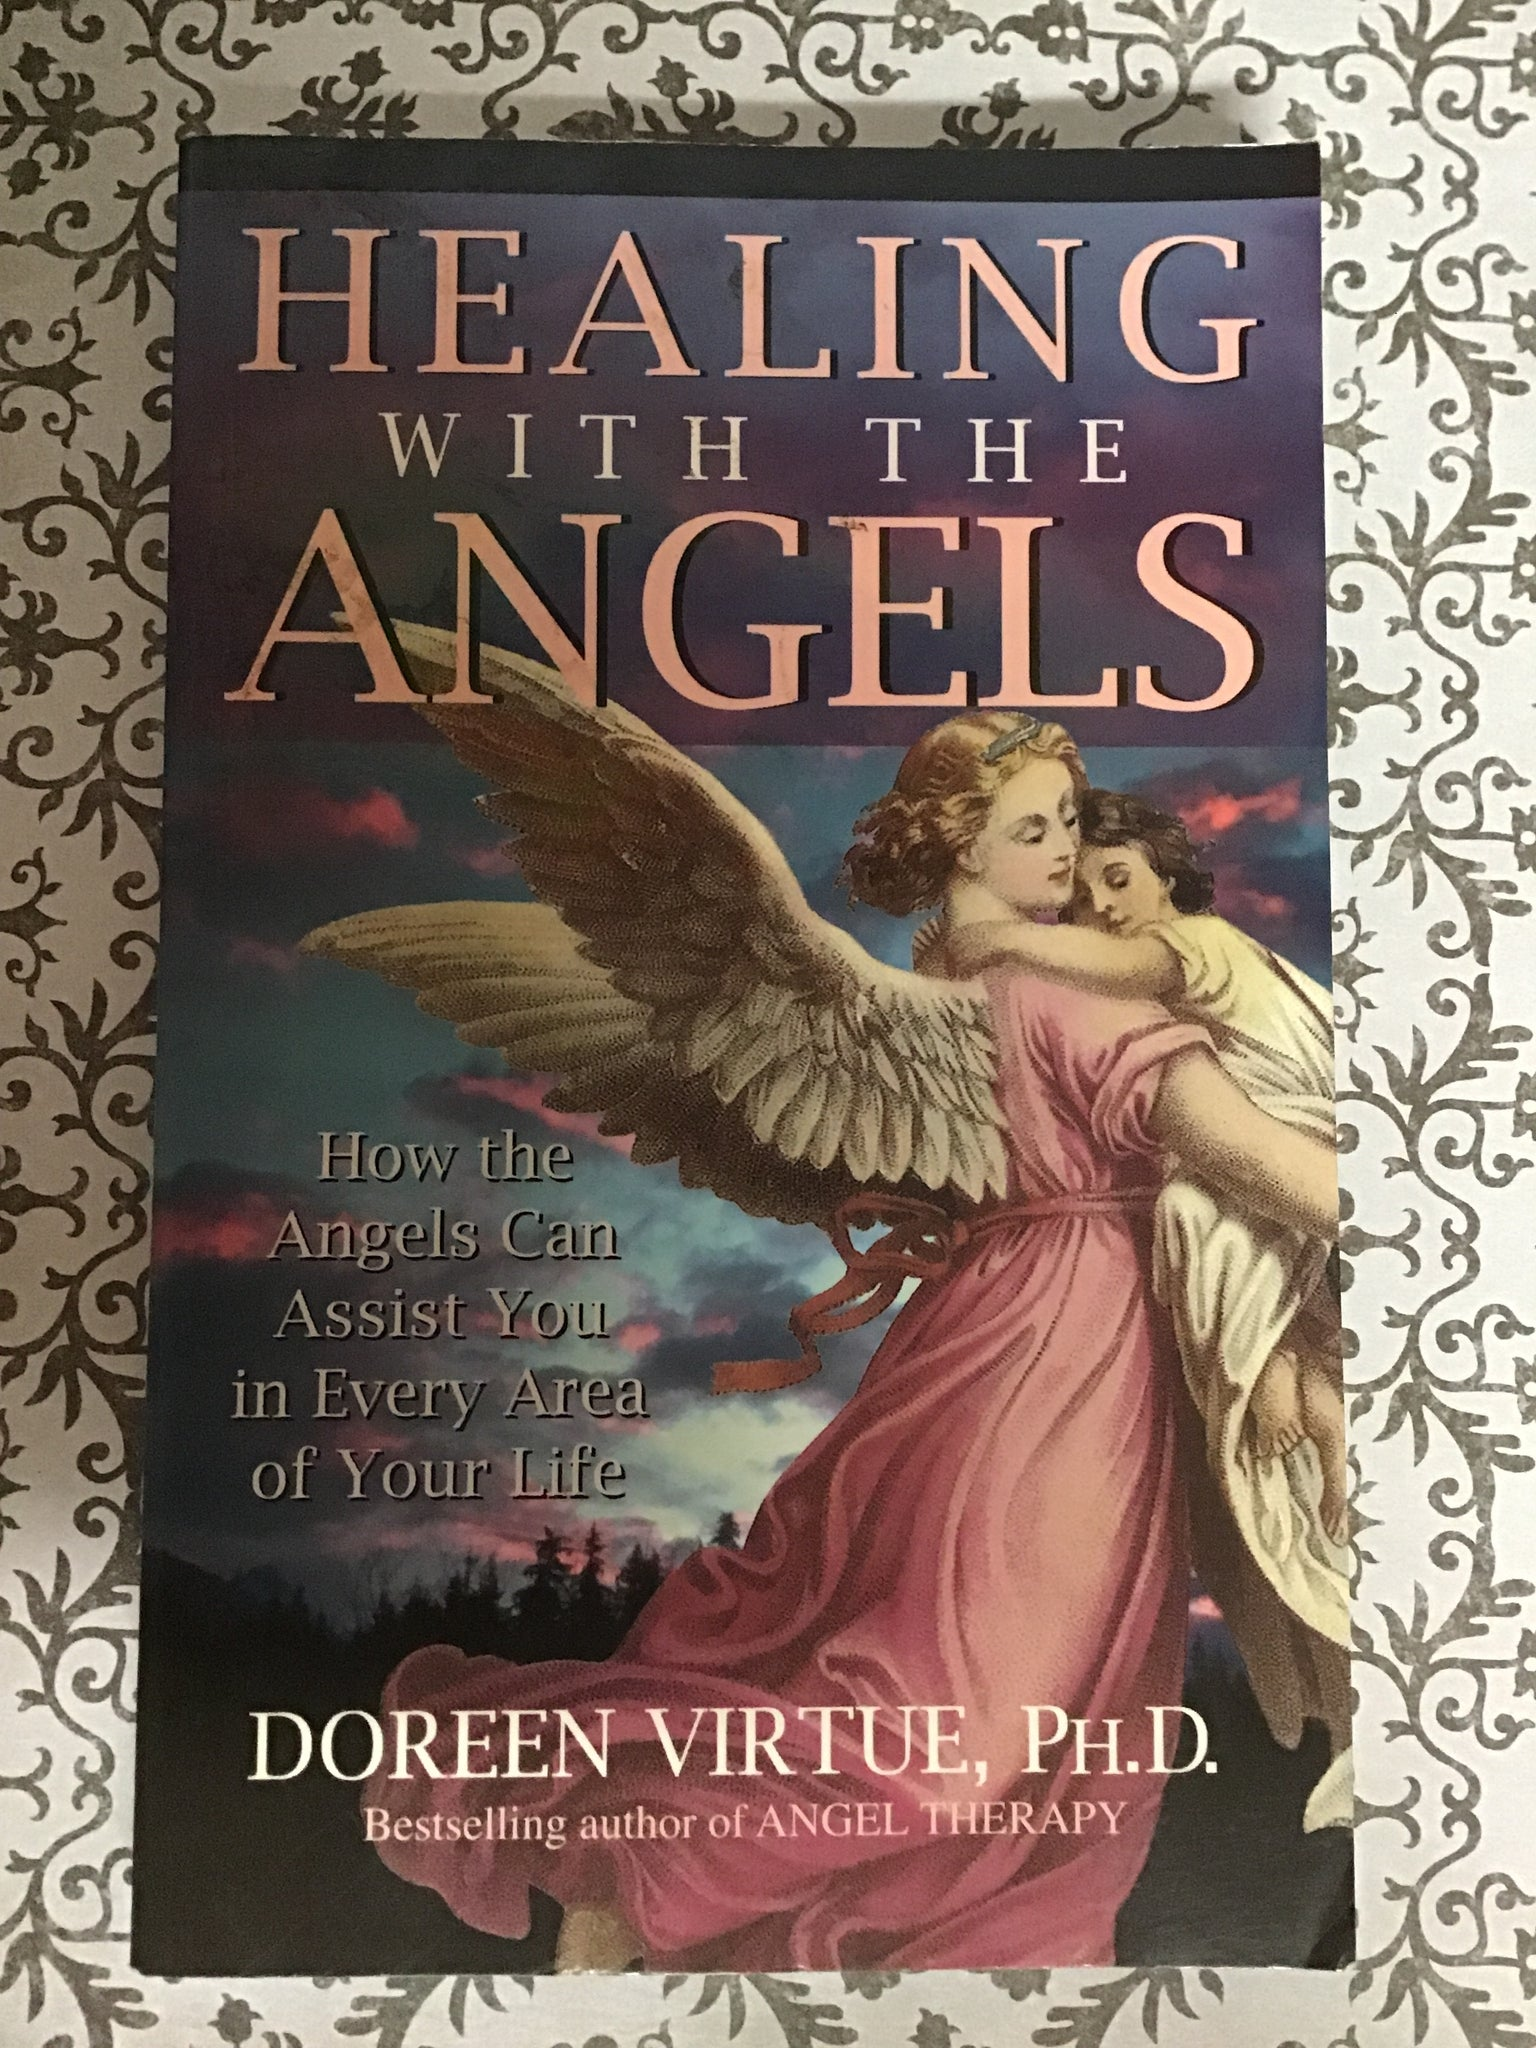 Healing with the Angels - Doreen Virtue ( Used -  Good Condition, no longer in production )